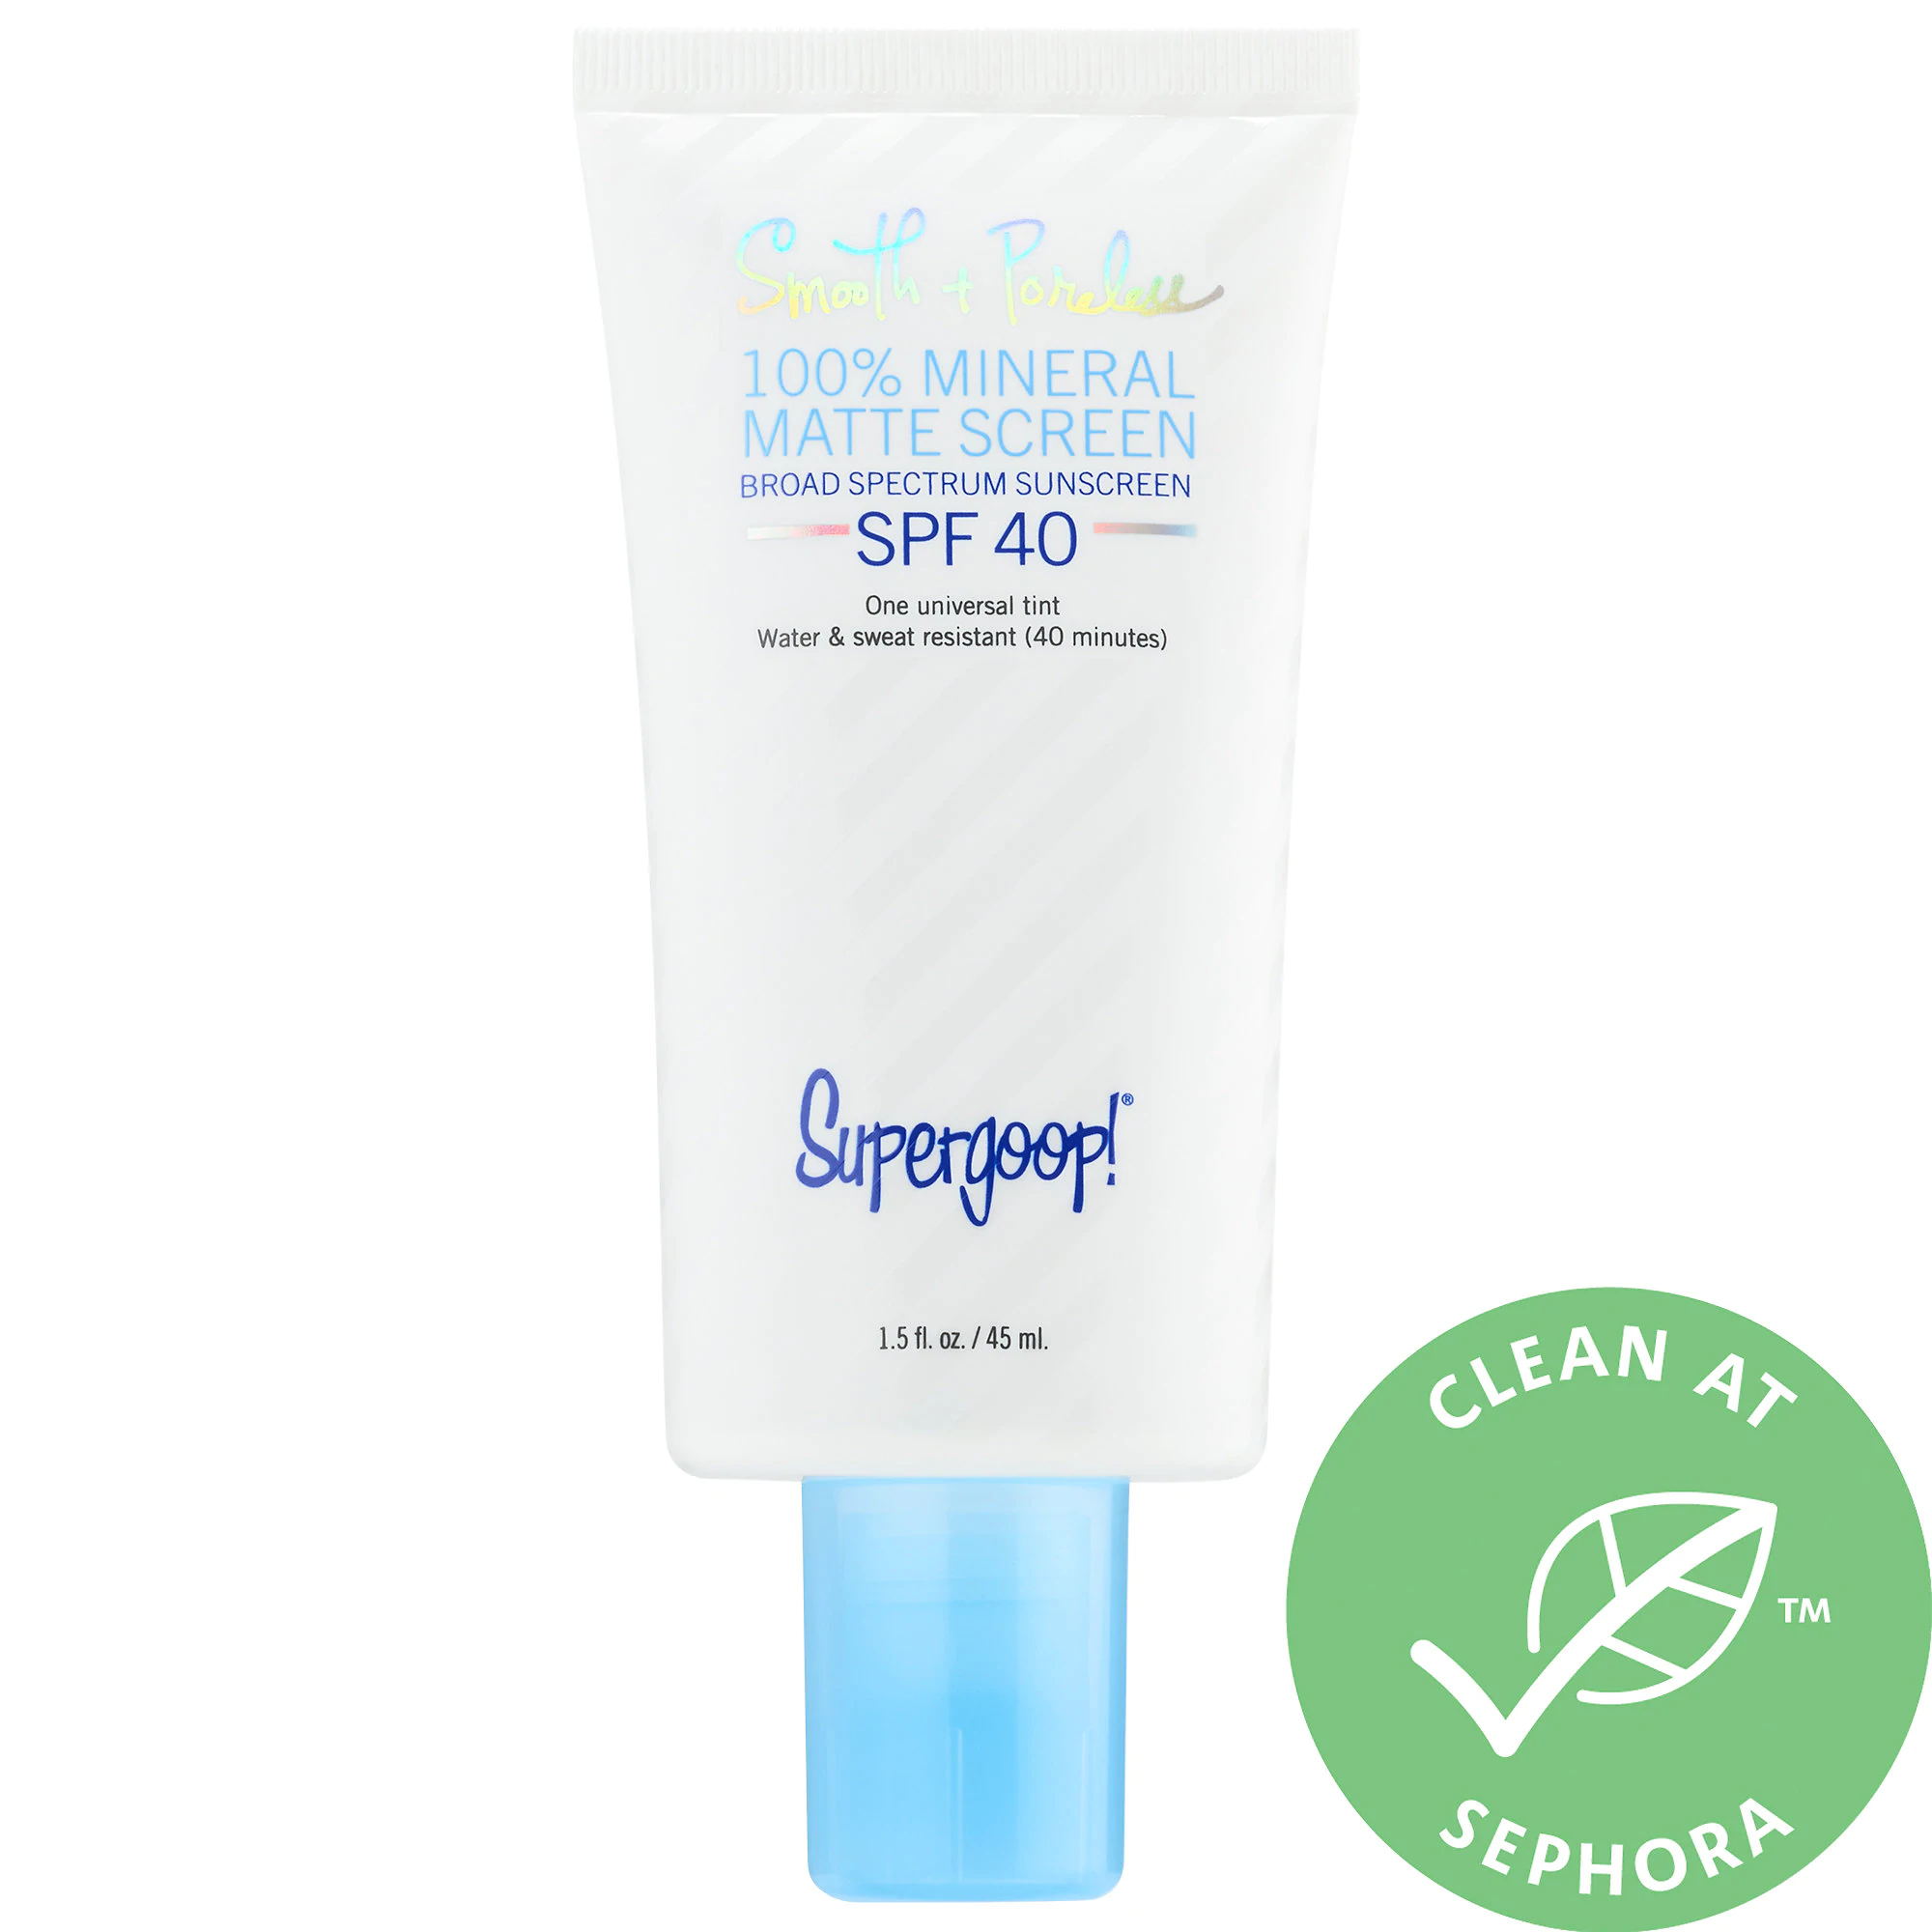 Supergoop! 100% Mineral Smooth & Poreless Matte Screen Spf 40